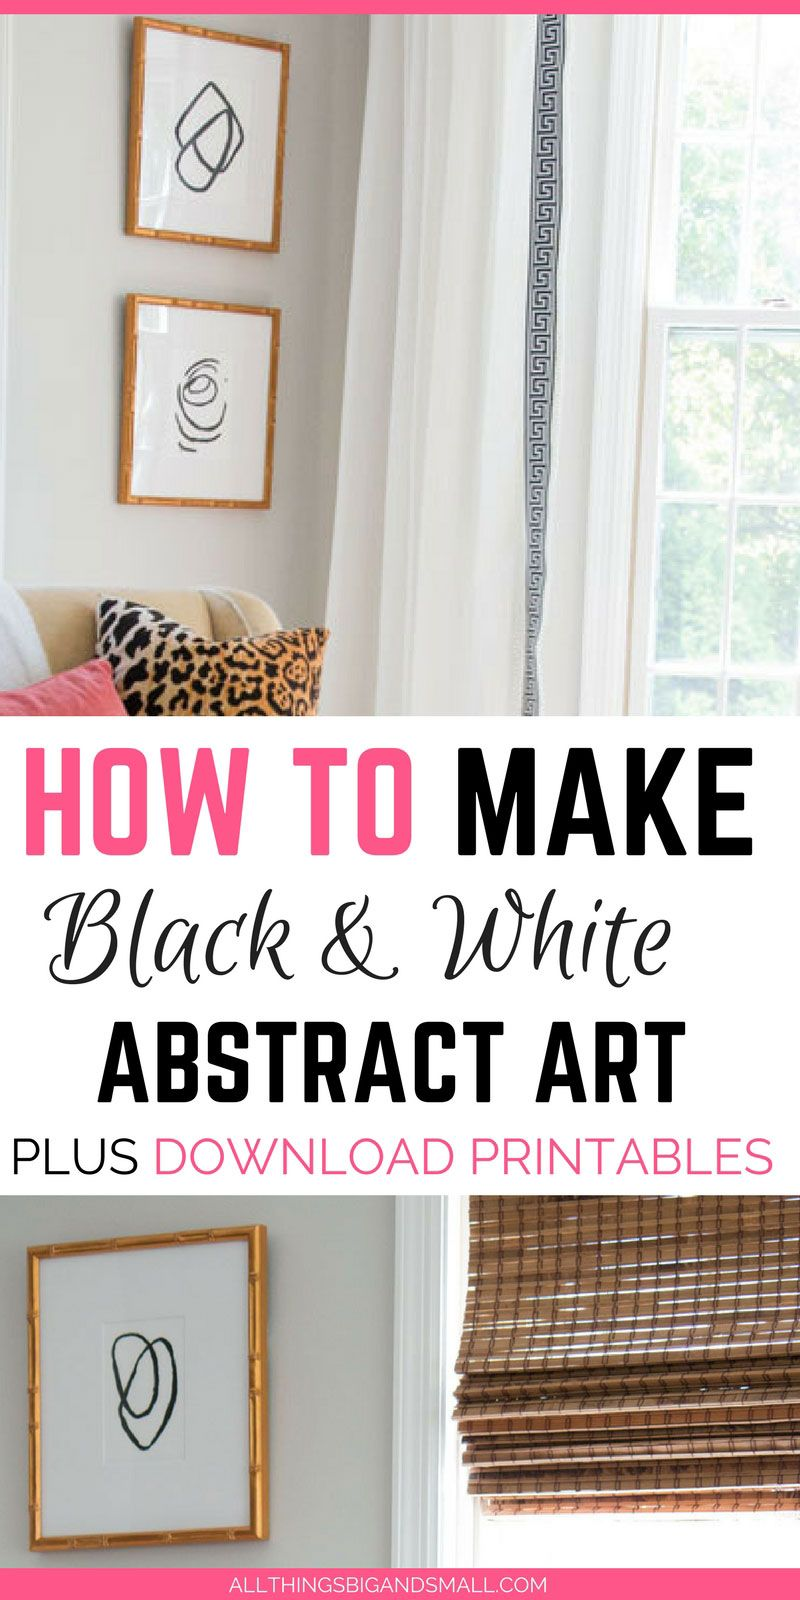 Easiest abstract black and white art that anyone can do plus